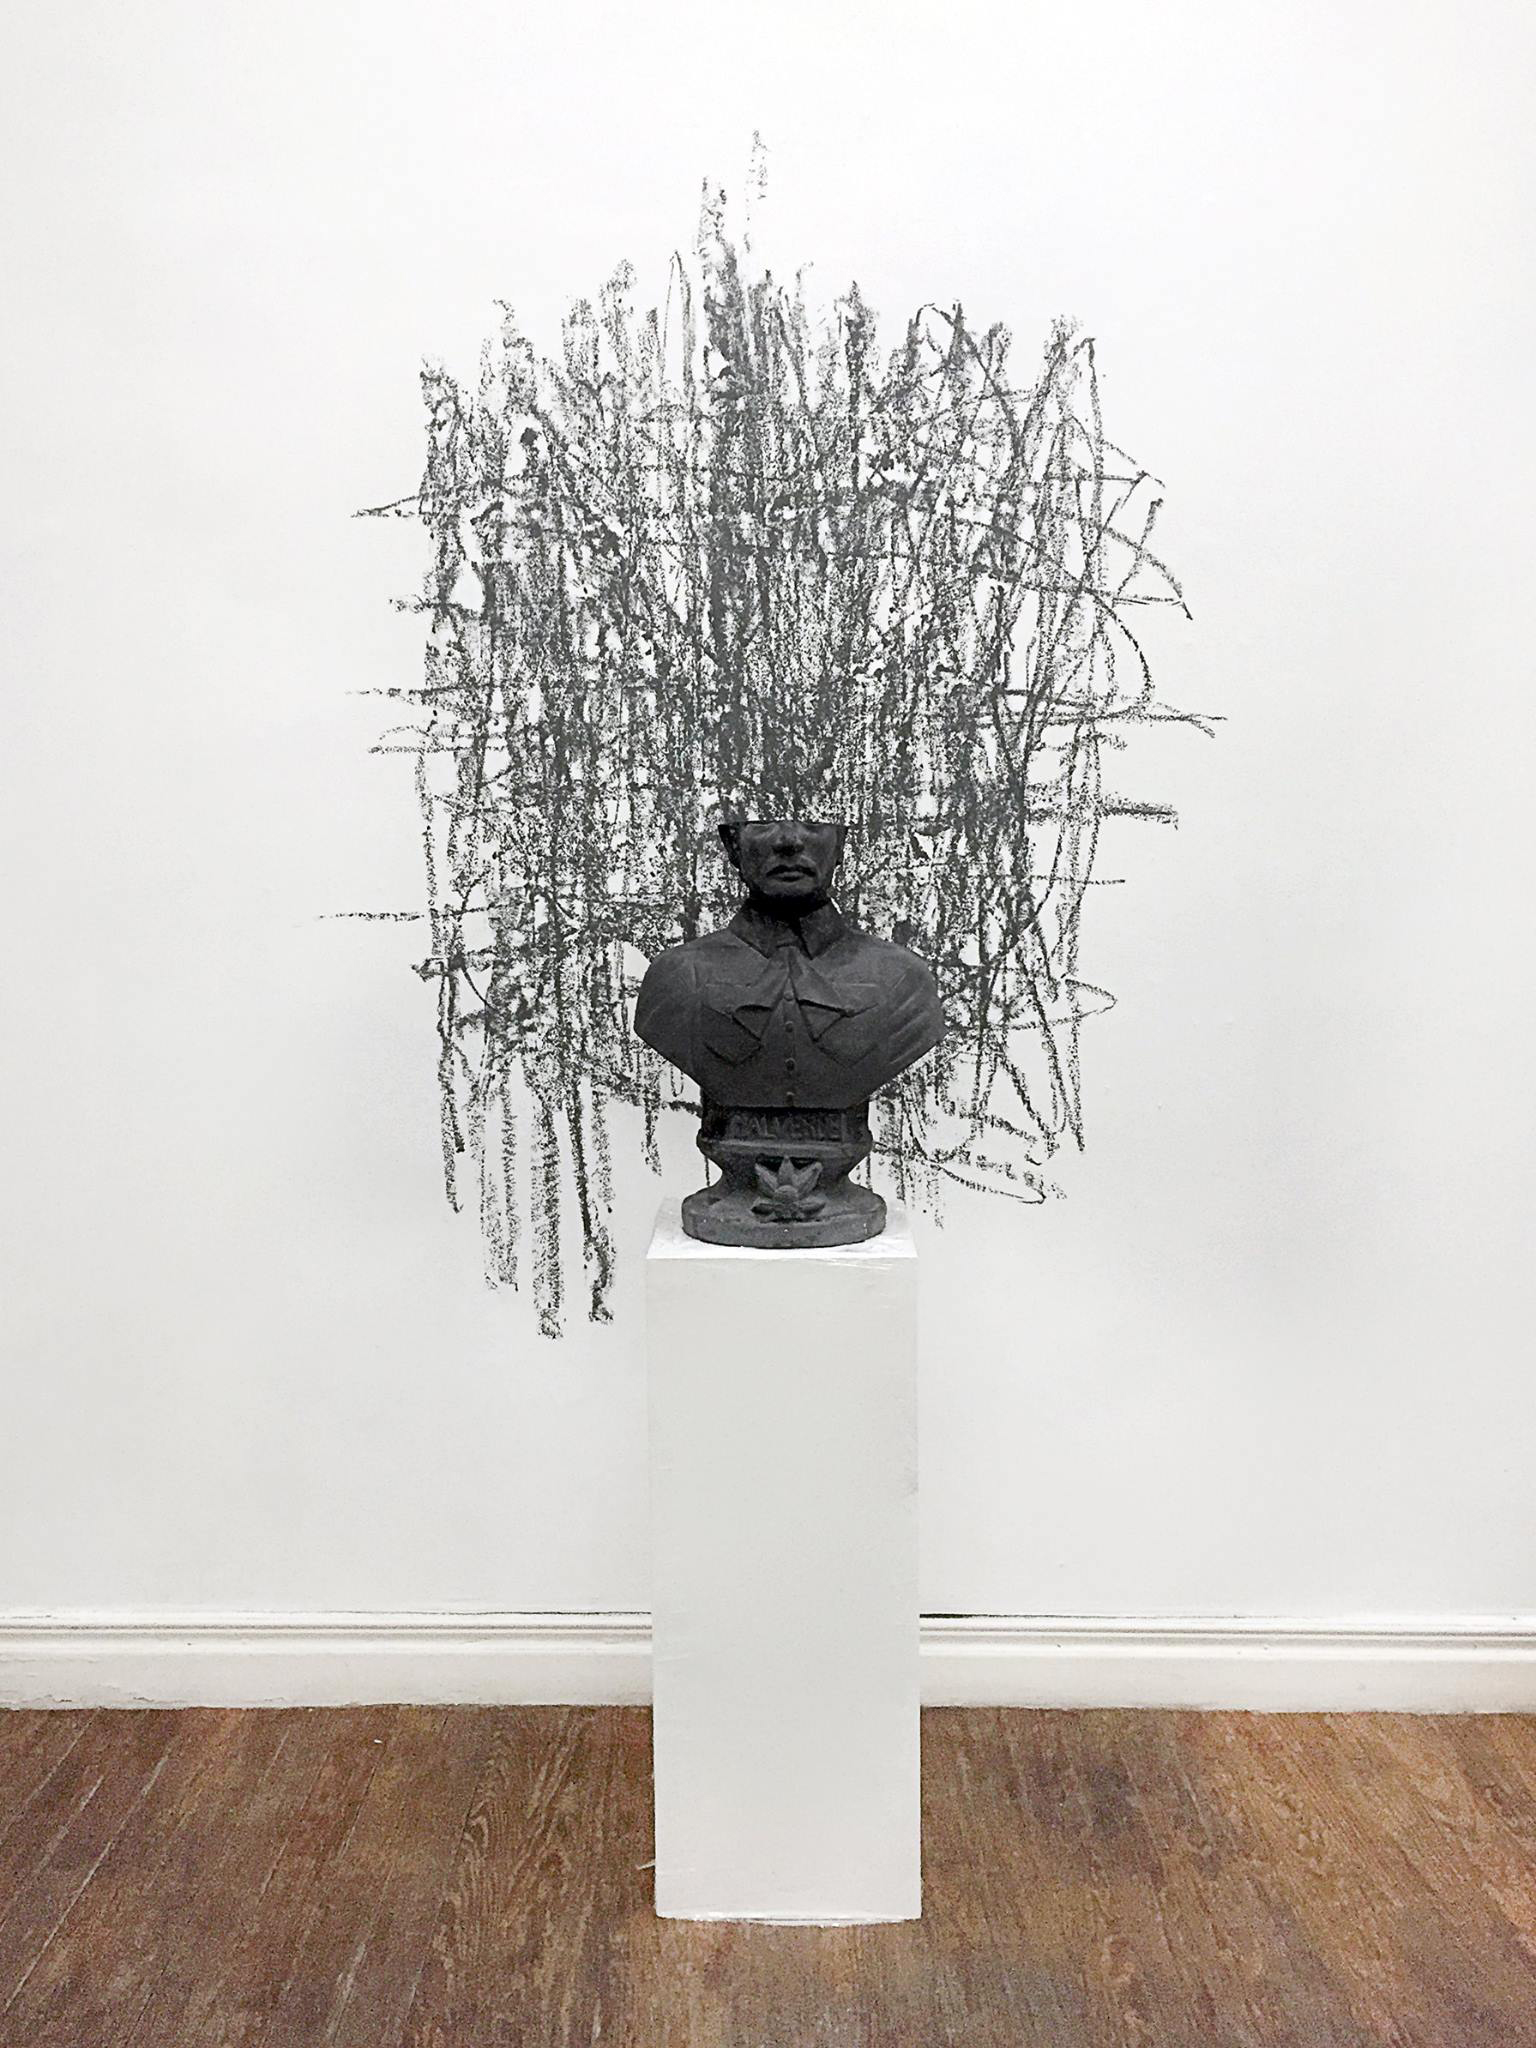 "<p><span class=""name"">Dmitri Obergfell</span><br><em>Statues Also Die (Mauricio)</em><span class='media'>Plaster and graphite</span>15 x 24 x 8in (Dimensions Variable with Drawing)<br>15 x 24 x 8in (Dimensions Variable with Drawing) (framed)<br>Edition of Edition of 3<br>2015<br><a class='inquire' href='mailto:info@gildargallery.com?subject=Artwork Inquiry DOBE0019&body=I am interested in finding out more about Statues Also Die (Mauricio) by Dmitri Obergfell'>Inquire</a></p>"